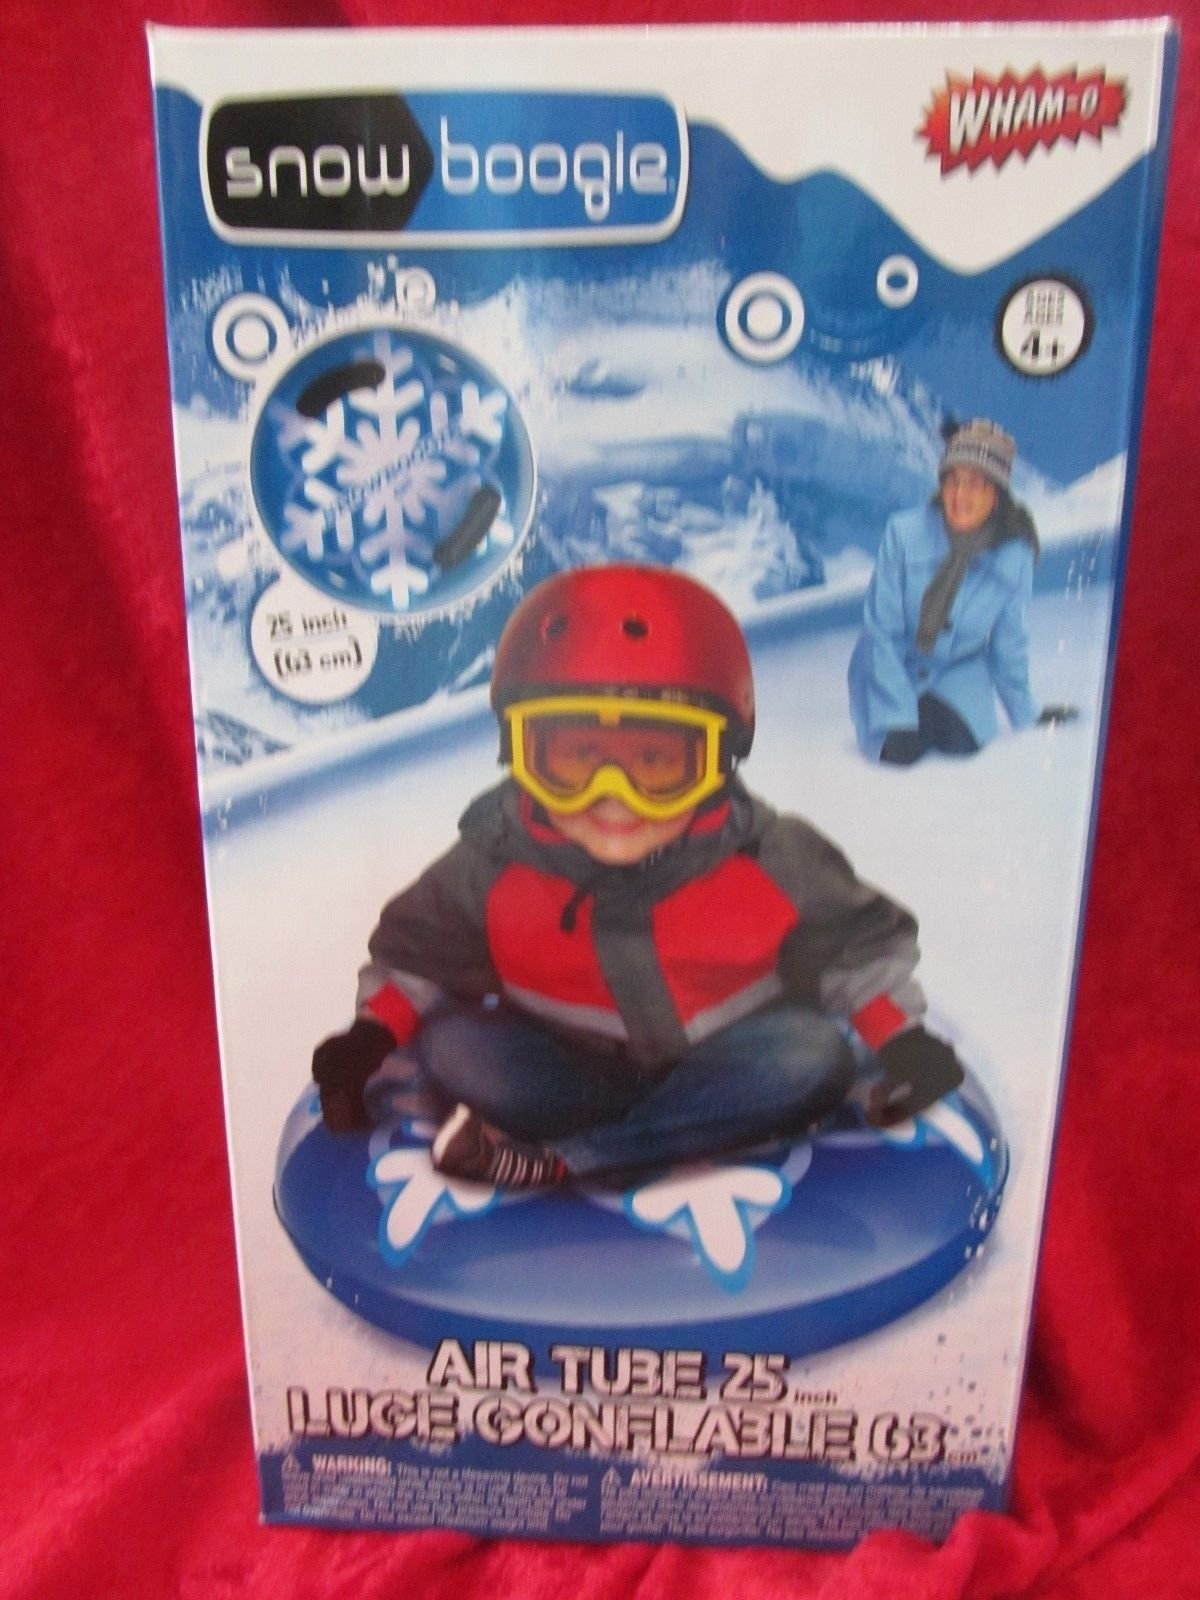 Kids Snow Tube Inflatable Sled 25''. Great for Winter Sledding and Tubing by Upscale Upgrades